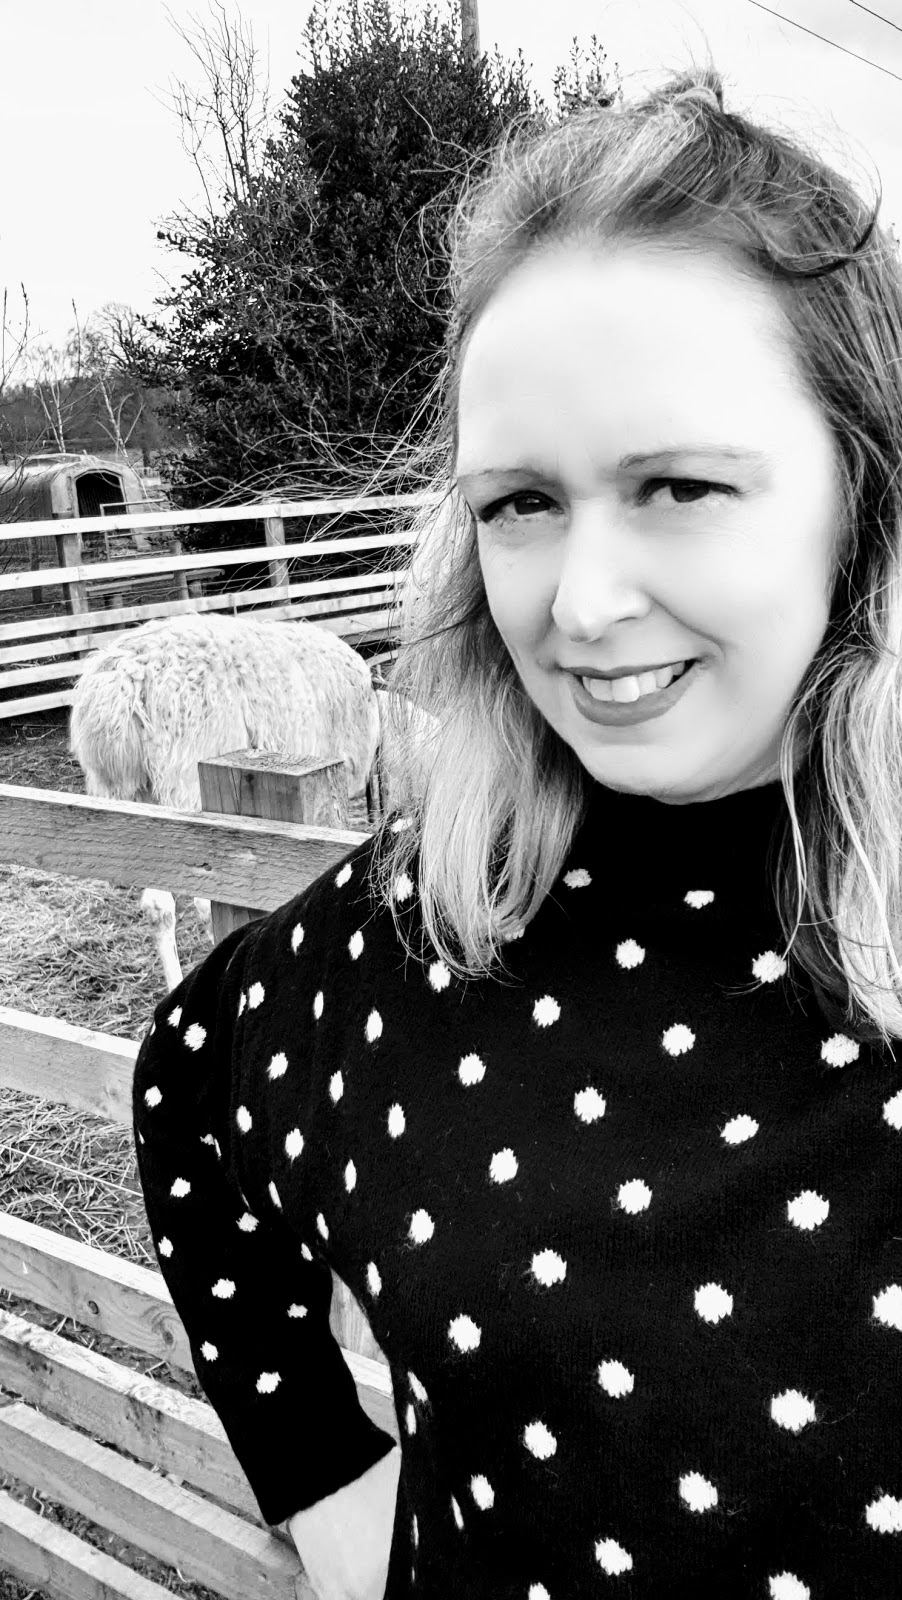 Black And White Polka Dot's: What I Wore Wednesday Link Up